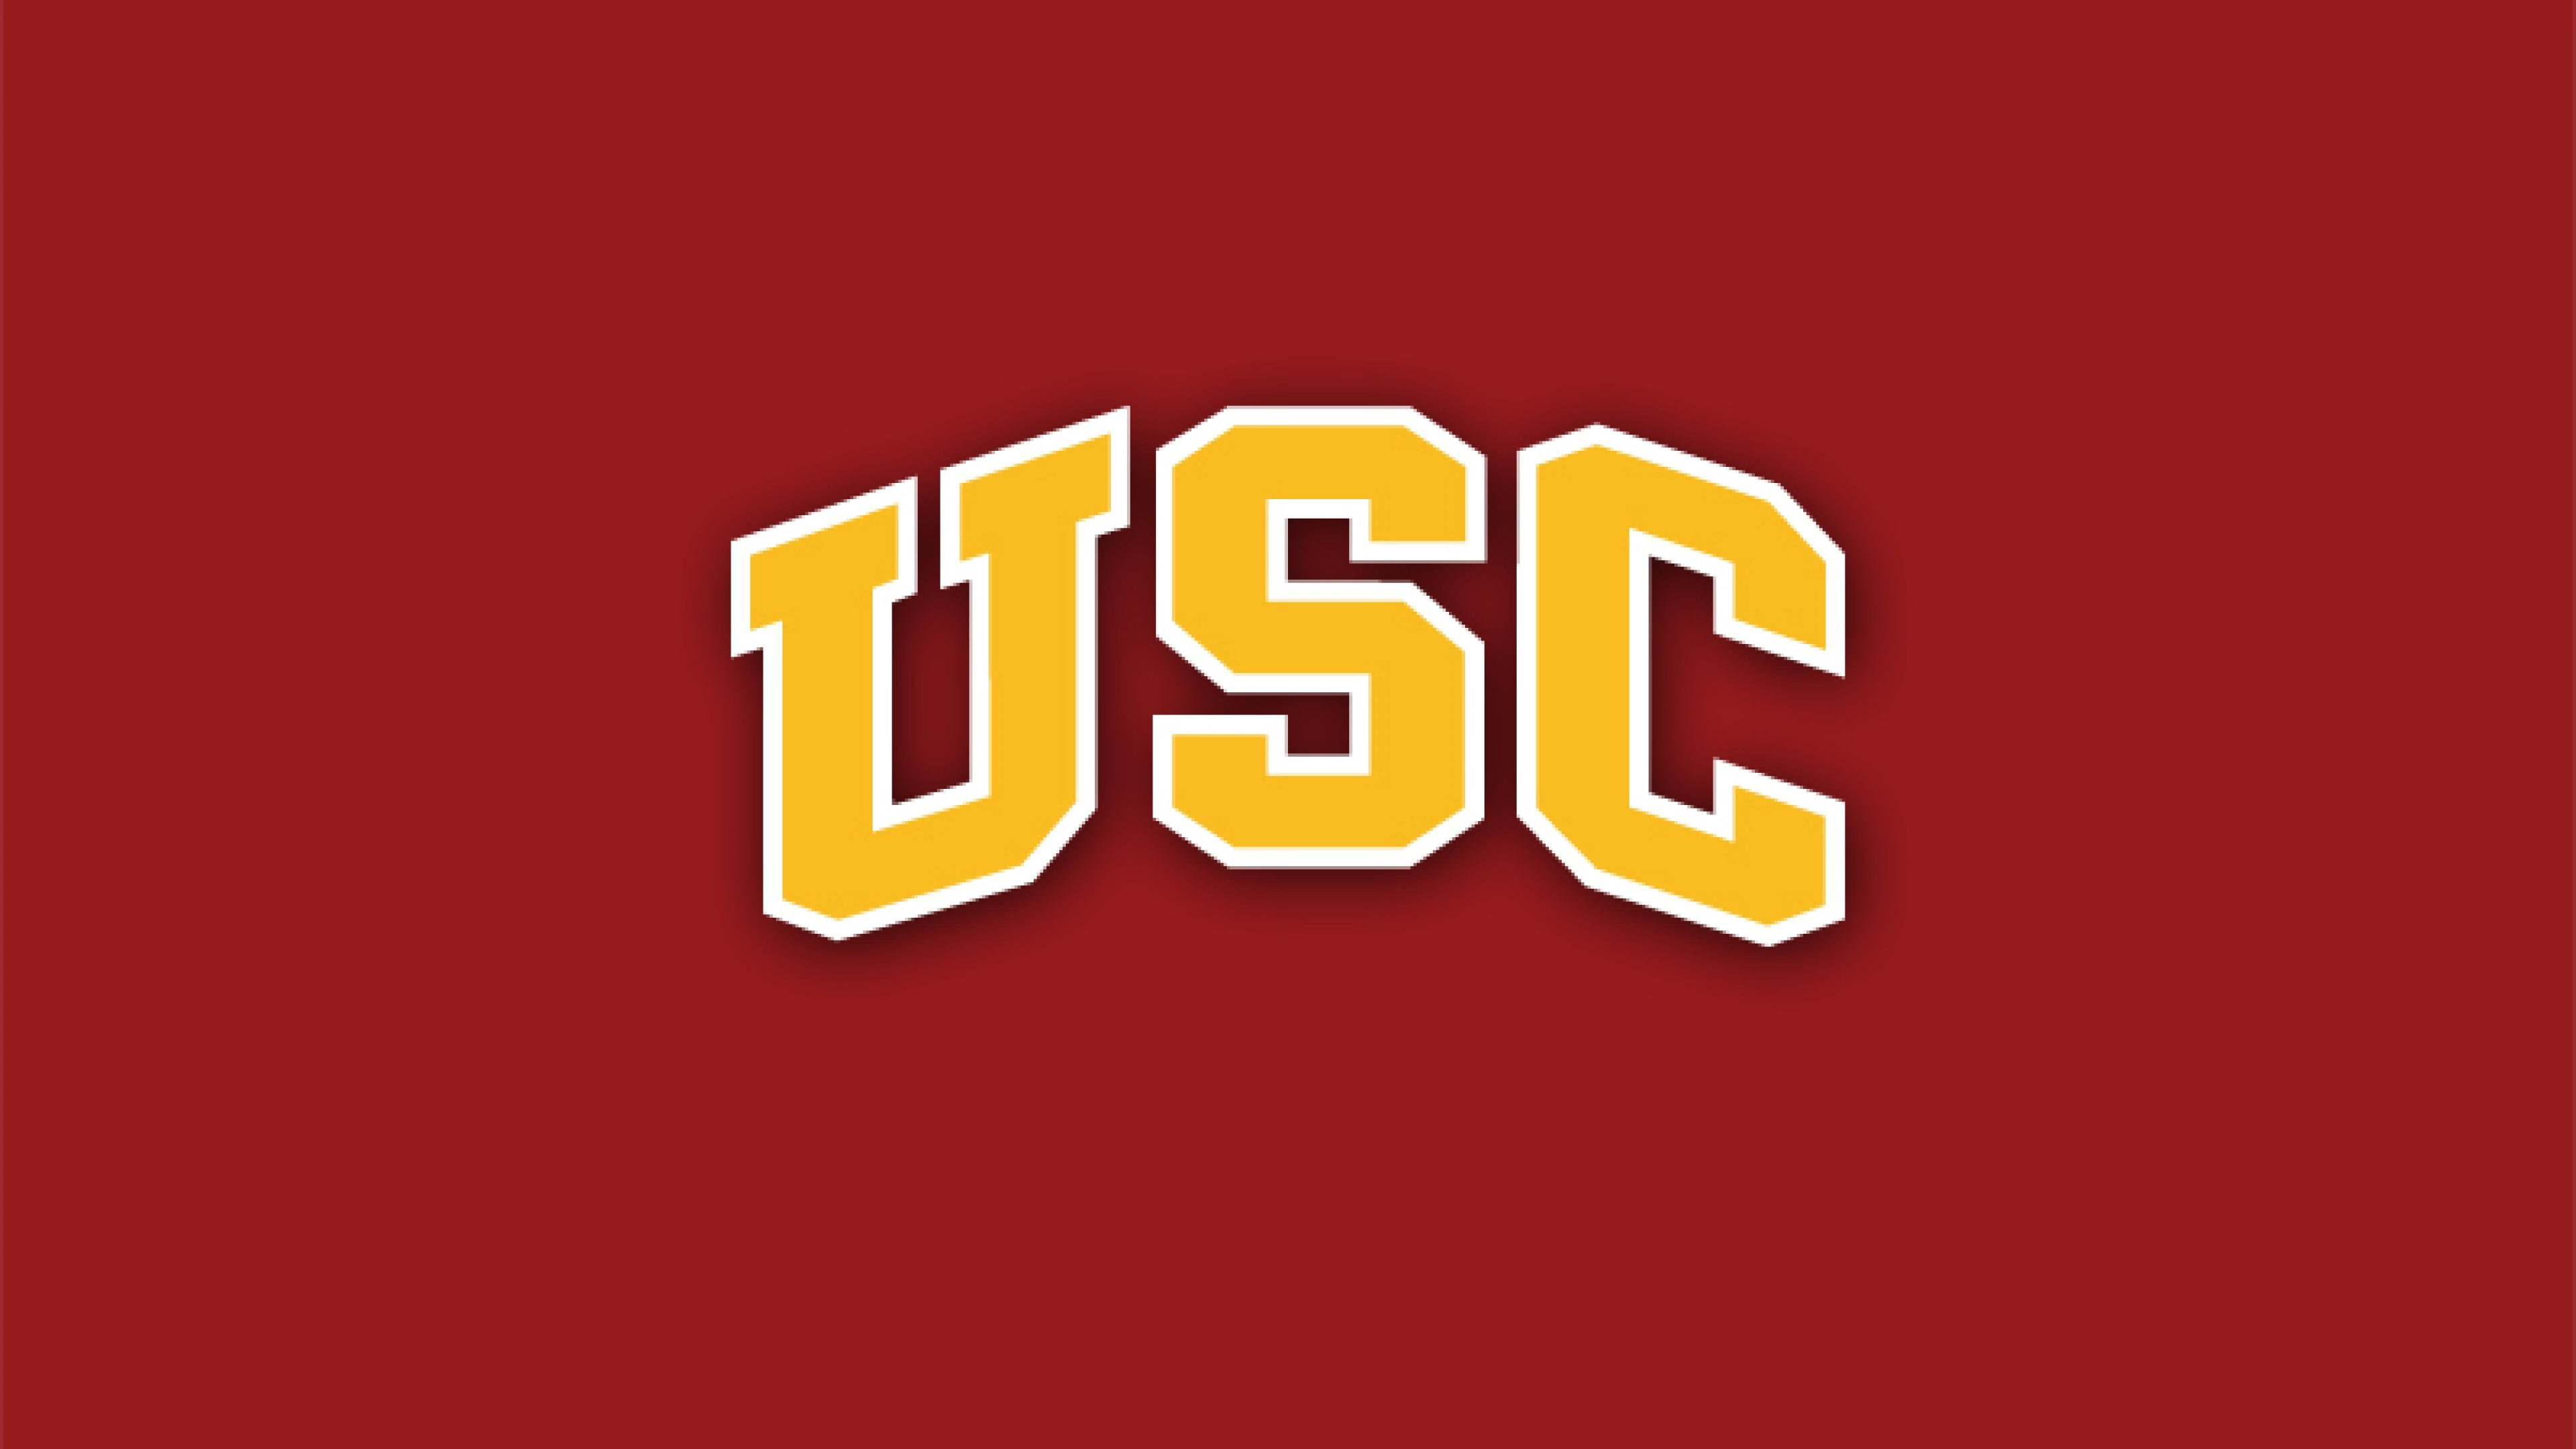 USC TROJANS college football wallpaper 3840x2160 592775 3840x2160